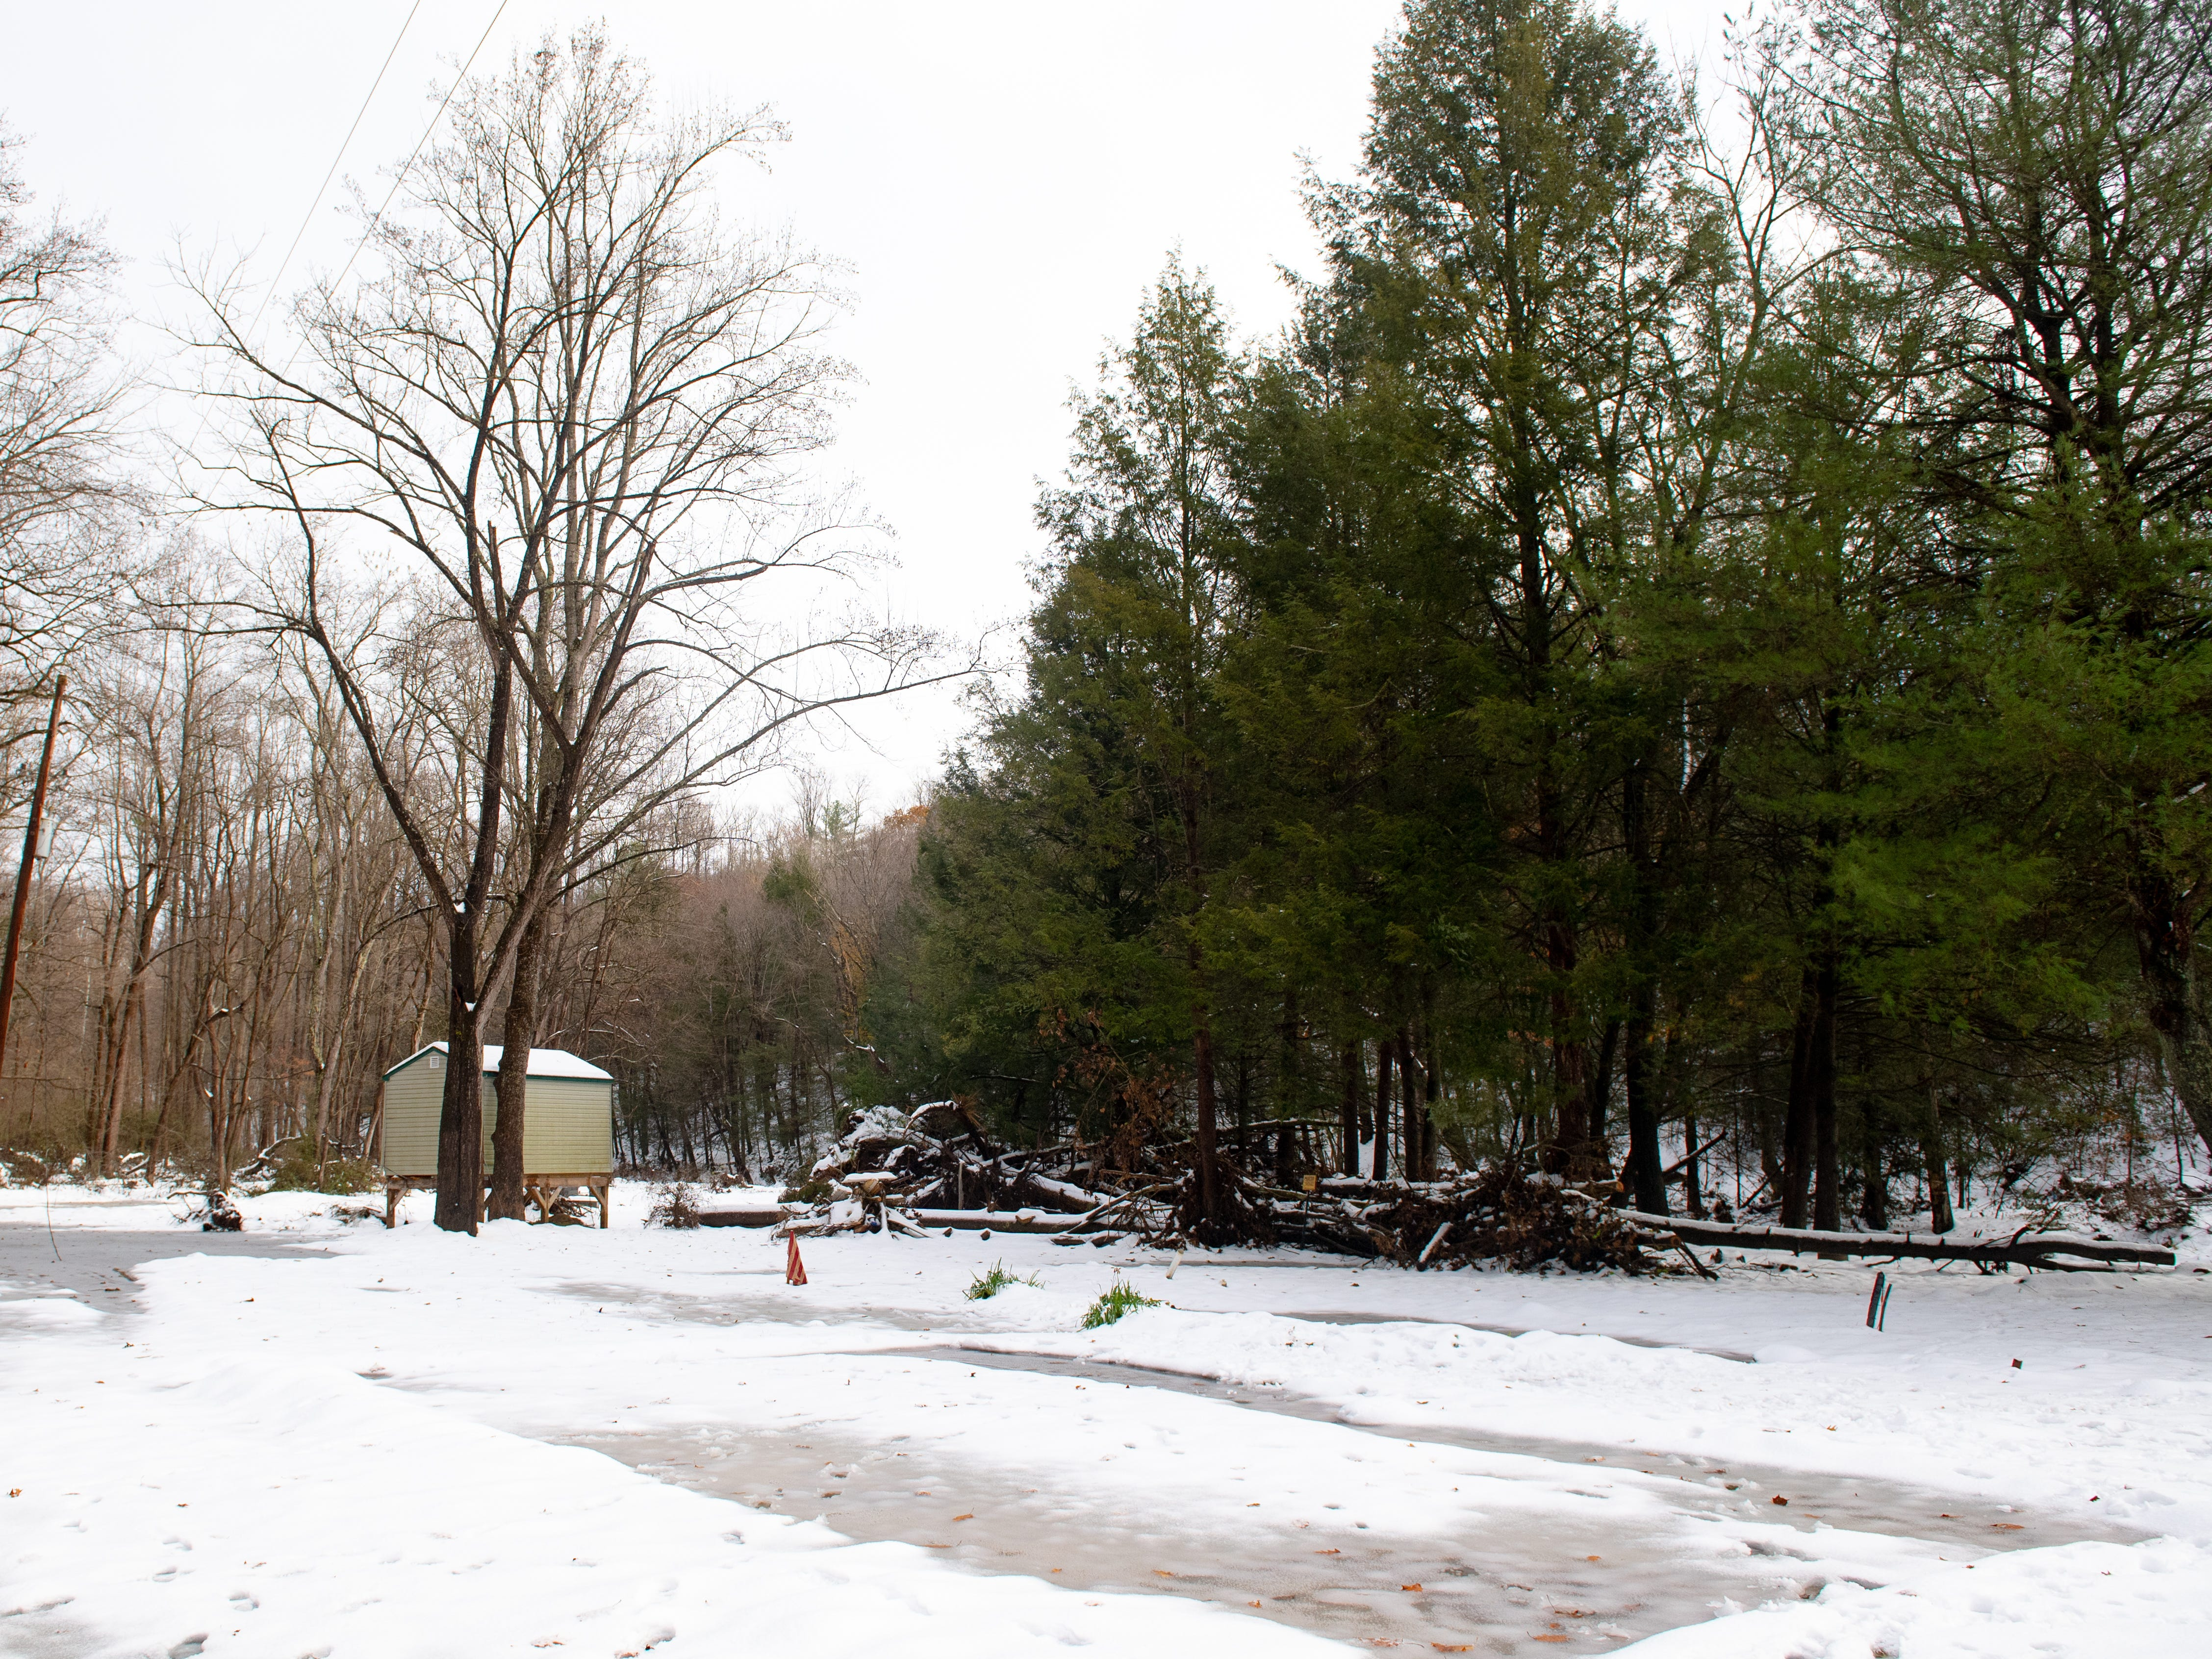 This is Bob Stoltzfus' property three months after the Otter Creek flood that devastated residences off of Kline Road, November 16, 2018.